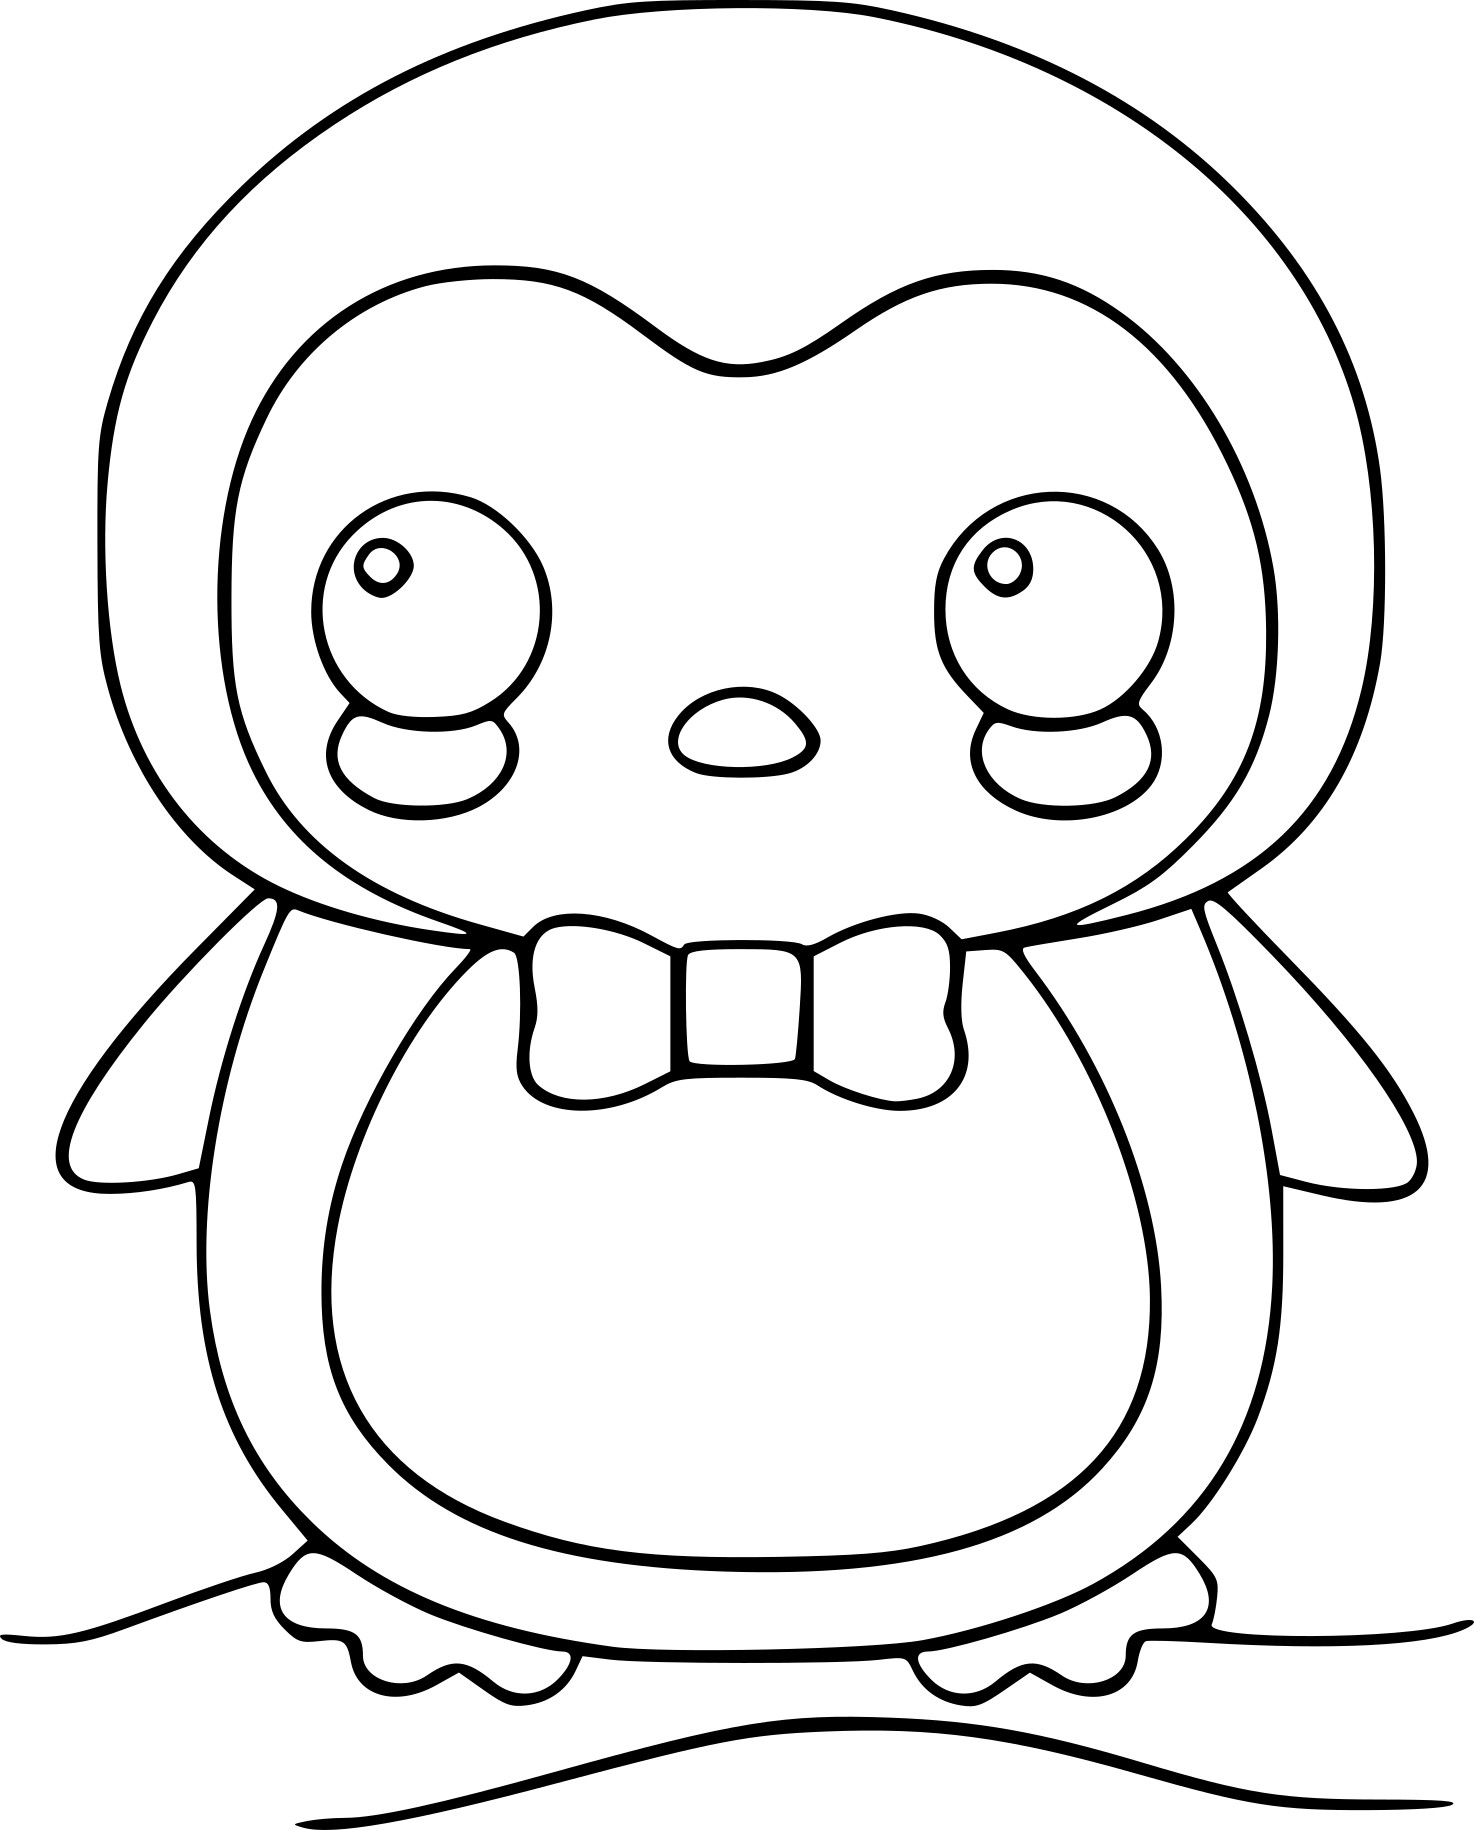 Coloriage manchot kawaii